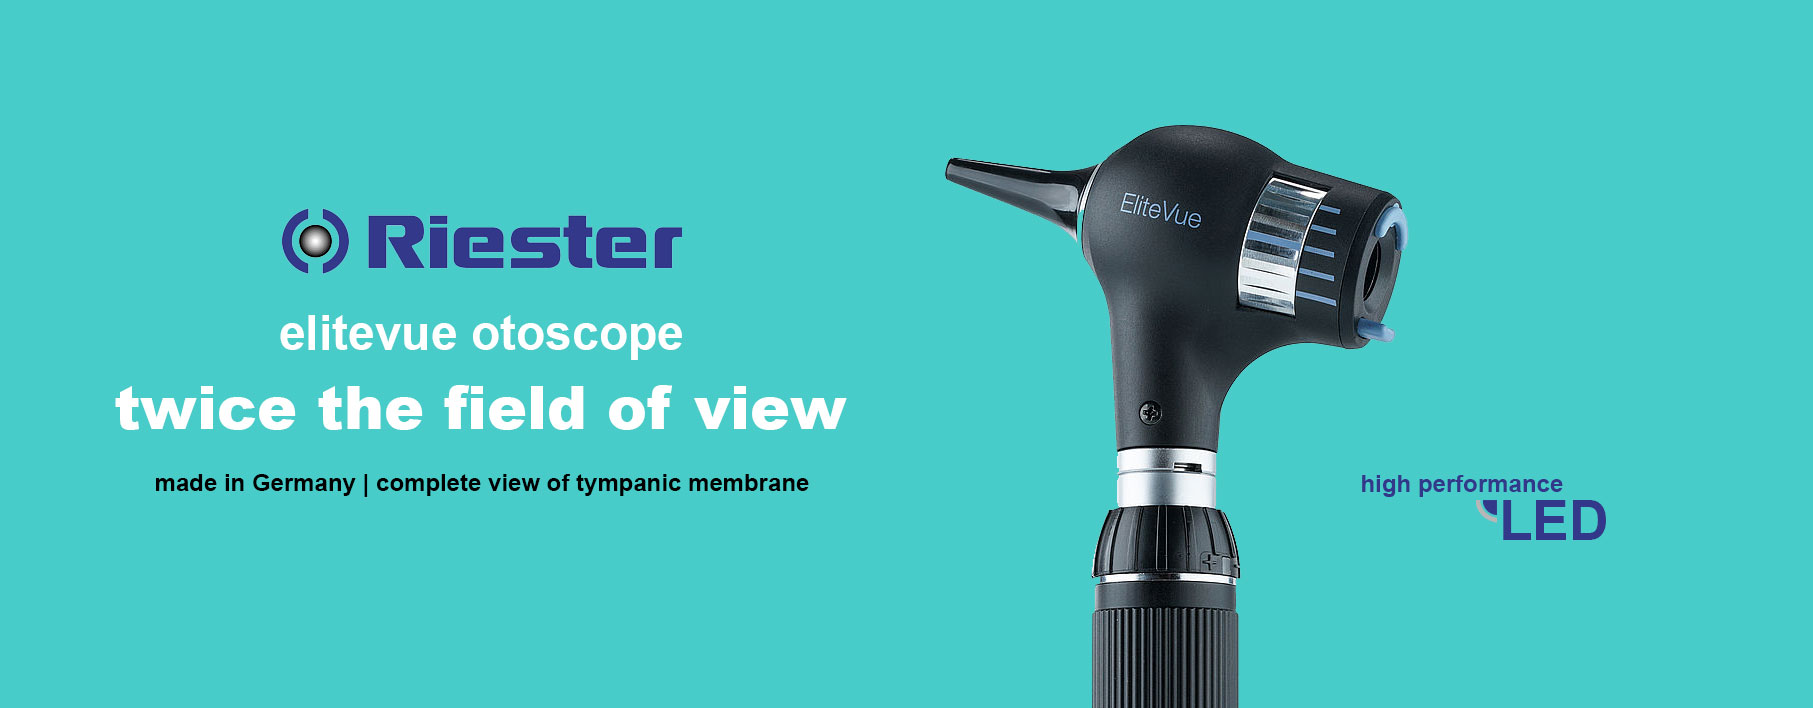 riester elitevue otoscope